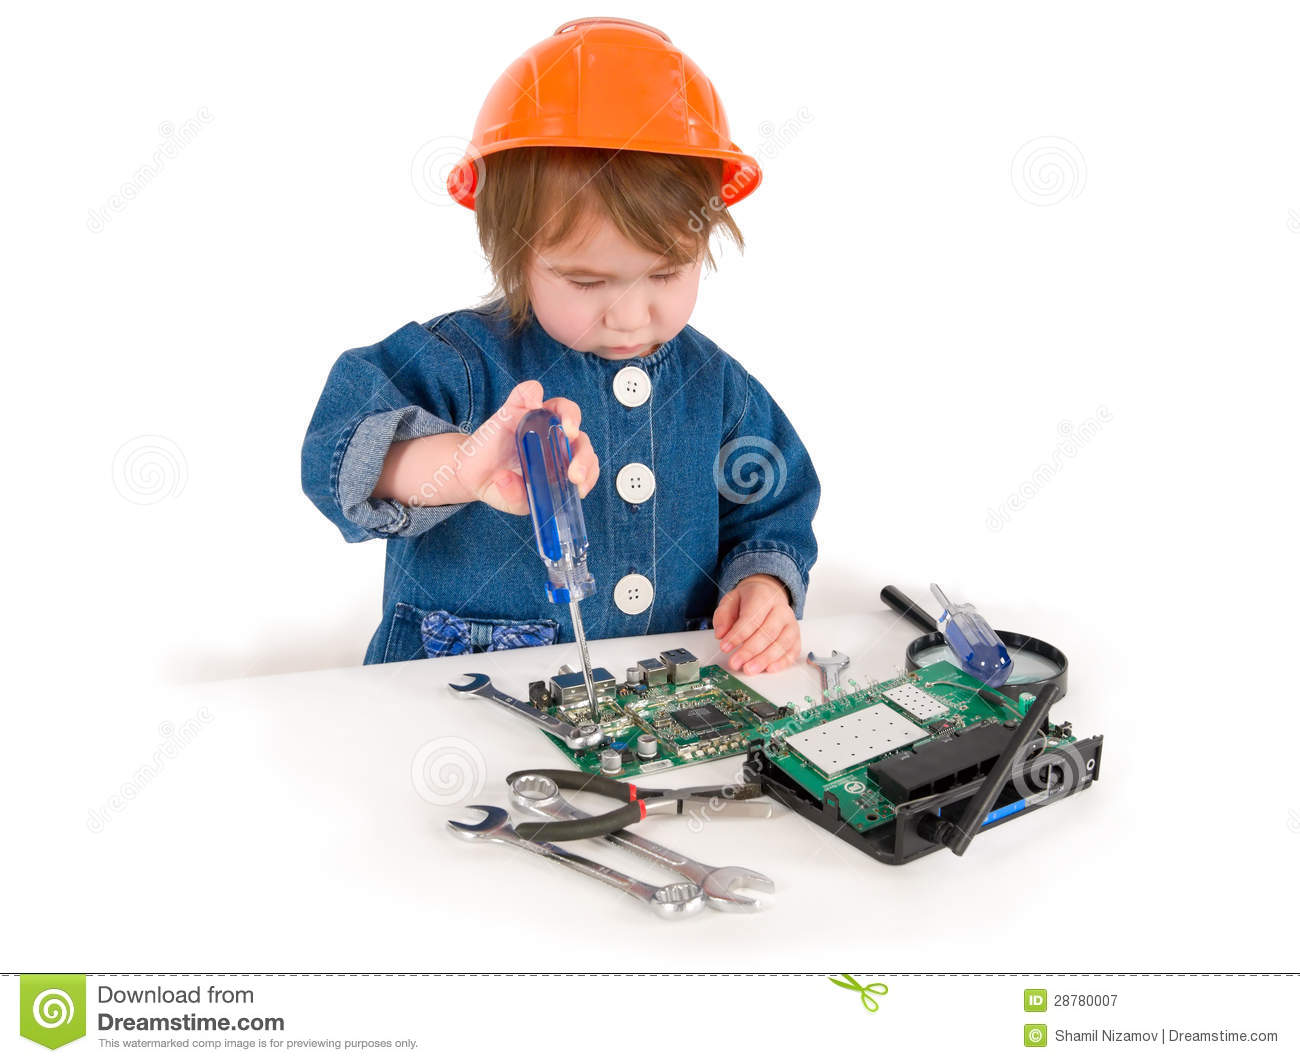 one small little girl fixing router or modem or pcb